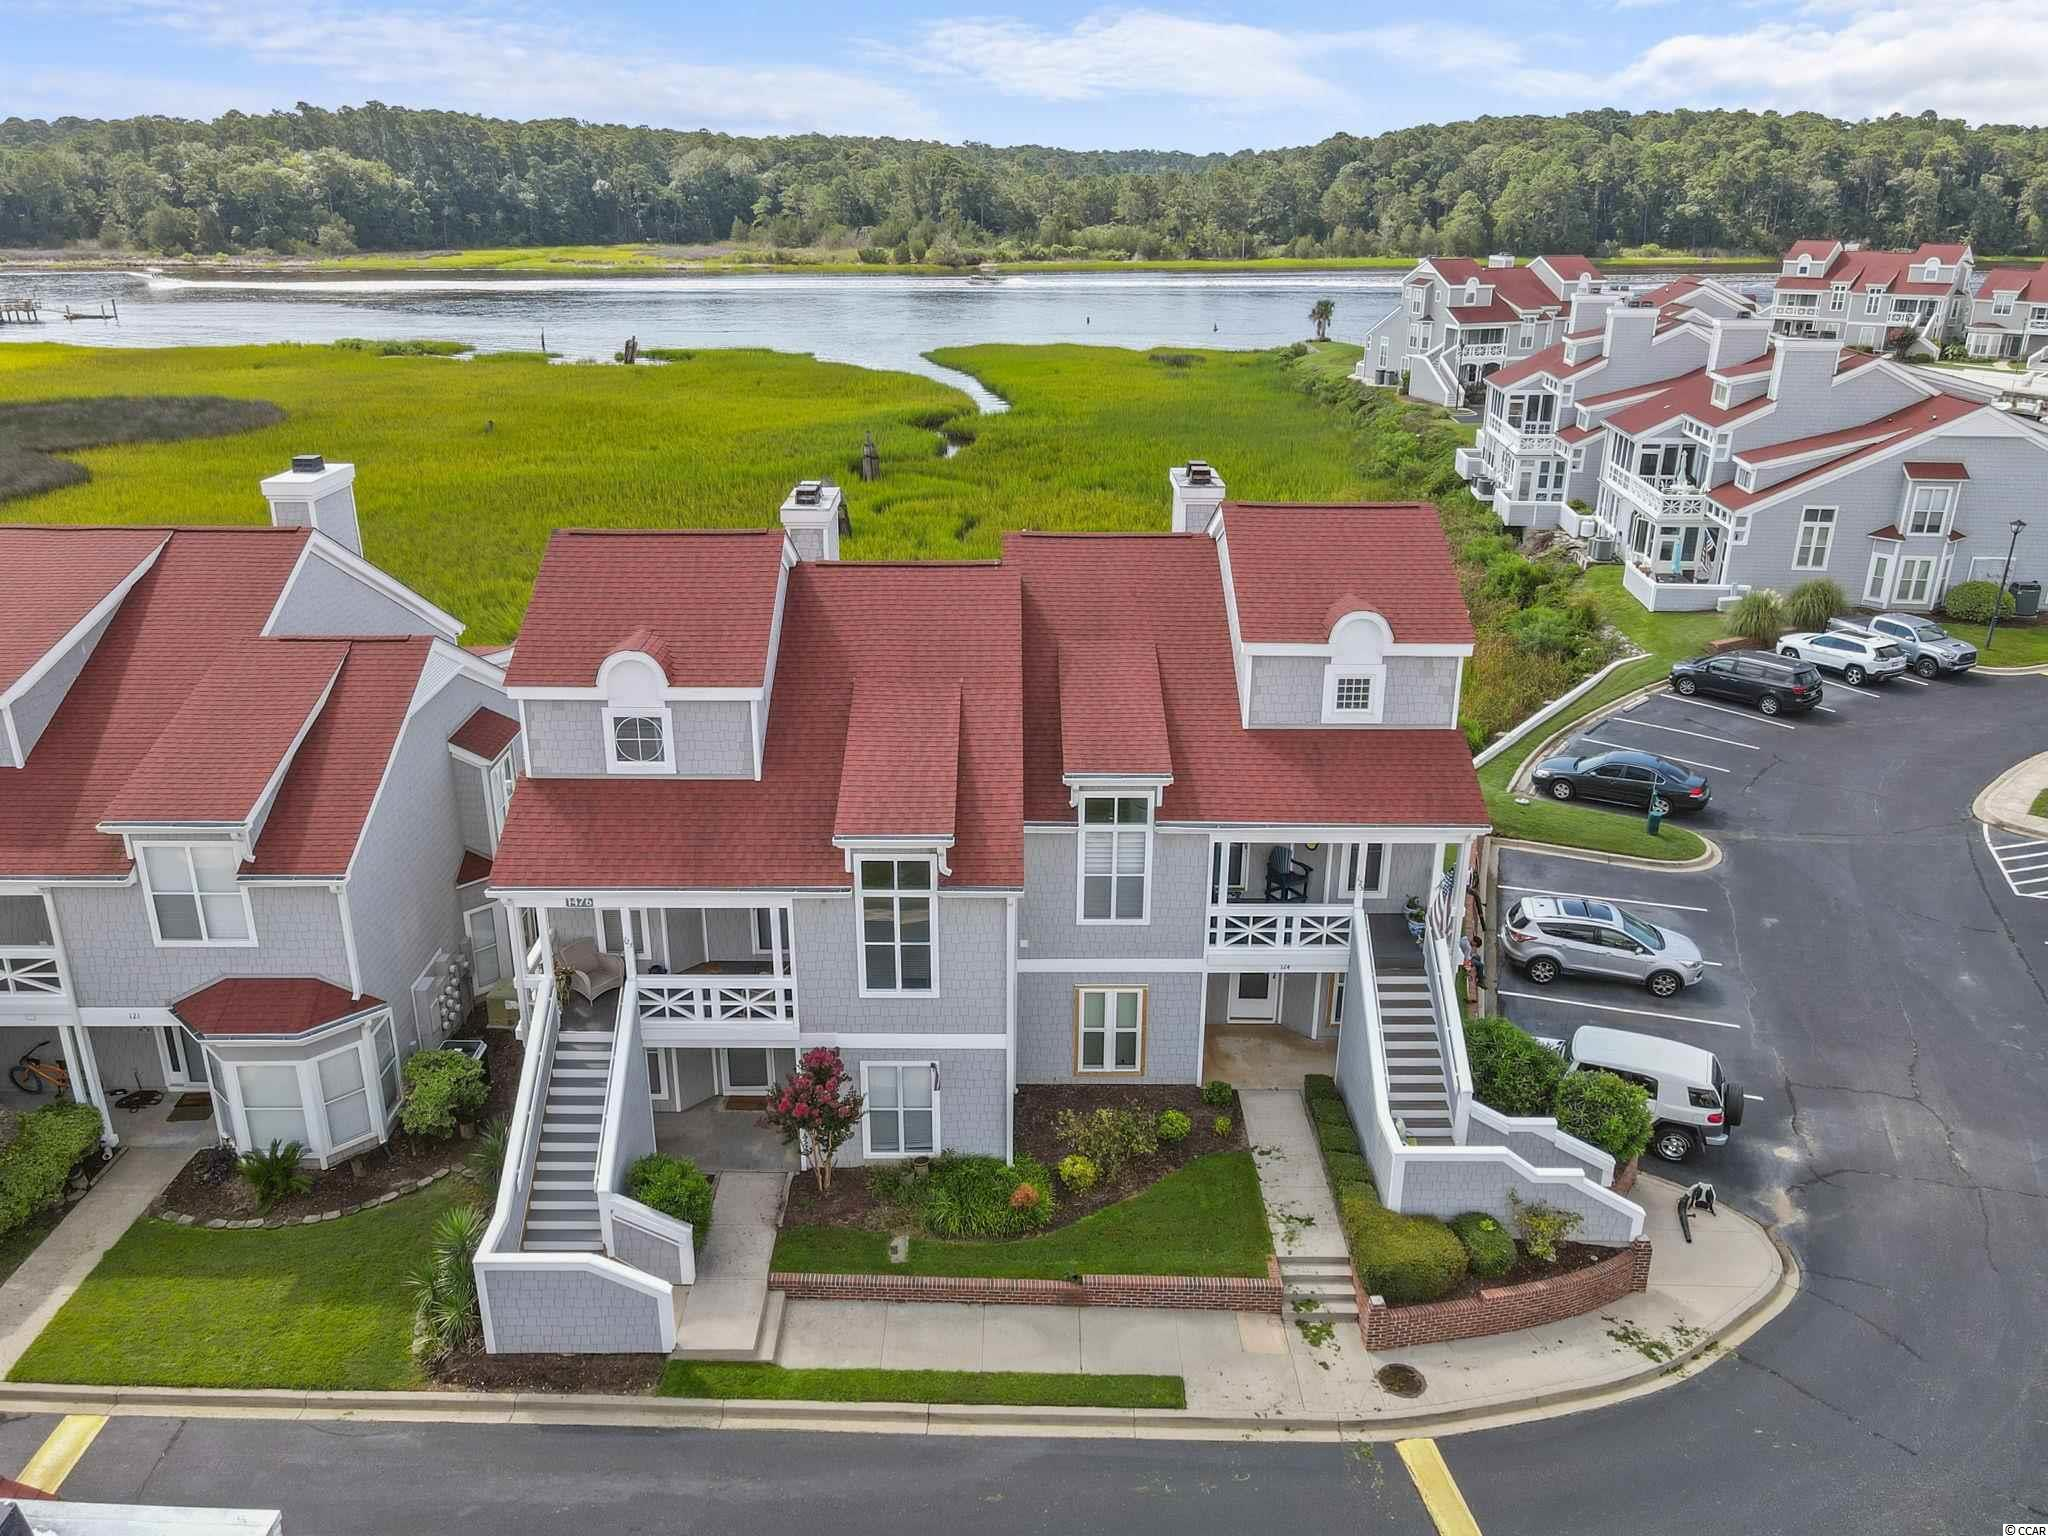 """DIRECT Intracoastal WATERWAY VIEWS from this rare listing in Mariners Pointe in Little River, SC.    # 123 Mariners Pointe has one of the BEST VIEWS in this gated waterfront and marina community.   This condo has 2 full bedrooms and 2 full bathrooms PLUS a loft on the 2nd floor that makes a great home office, play room, or small bunk bedroom.   This 2-story condo has a nice foyer entry with a coat closet to your left once you enter.  The stairs to the 2nd floor are in front of you.   The spacious kitchen features a pass-through window to the dining area.   The kitchen also has: Tiled countertops and backsplash; white porcelain sink; smooth-top range; built-in microwave; crown molding; a breakfast nook; all kitchen appliances (refrigerator, stove/oven, microwave, and dishwasher; and a large washer/dryer closet fit for a side-by-side washer/dryer).   The dining area is in between the kitchen and the living room and has crown molding.   The sunken living room features a cathedral ceiling, built-in shelving, and an electric fireplace.  There is 1 bedroom on the 1st floor with his-and-her closets, and it's connected to a full bathroom with tiled sink-top, crown molding, an oval mirror with decorative lighting, and a tub/shower combo.  Upstairs is the loft, along with the owner's suite.  The owner's suite has direct views of the Waterway, crown molding, a ceiling fan, and walk-in closet.  The owner's suite bathroom has 12"""" diagonally-laid decorative tile, 6"""" tiled sink-top, framed mirror, decorative lighting, crown molding, and a huge tiled corner shower.   #123 Mariners Pointe has a covered front porch, an outside storage closet, and a spacious rear balcony with peaceful views of the marsh and Intracoastal Waterway.  All of the decking on both the front porch and rear balcony is all-new Trex decking just installed in June 2021.   The front steps leading to the condo were also replaced in May 2021.  New 5"""" LVP flooring was installed in the entire downstairs in 2020.  Also"""